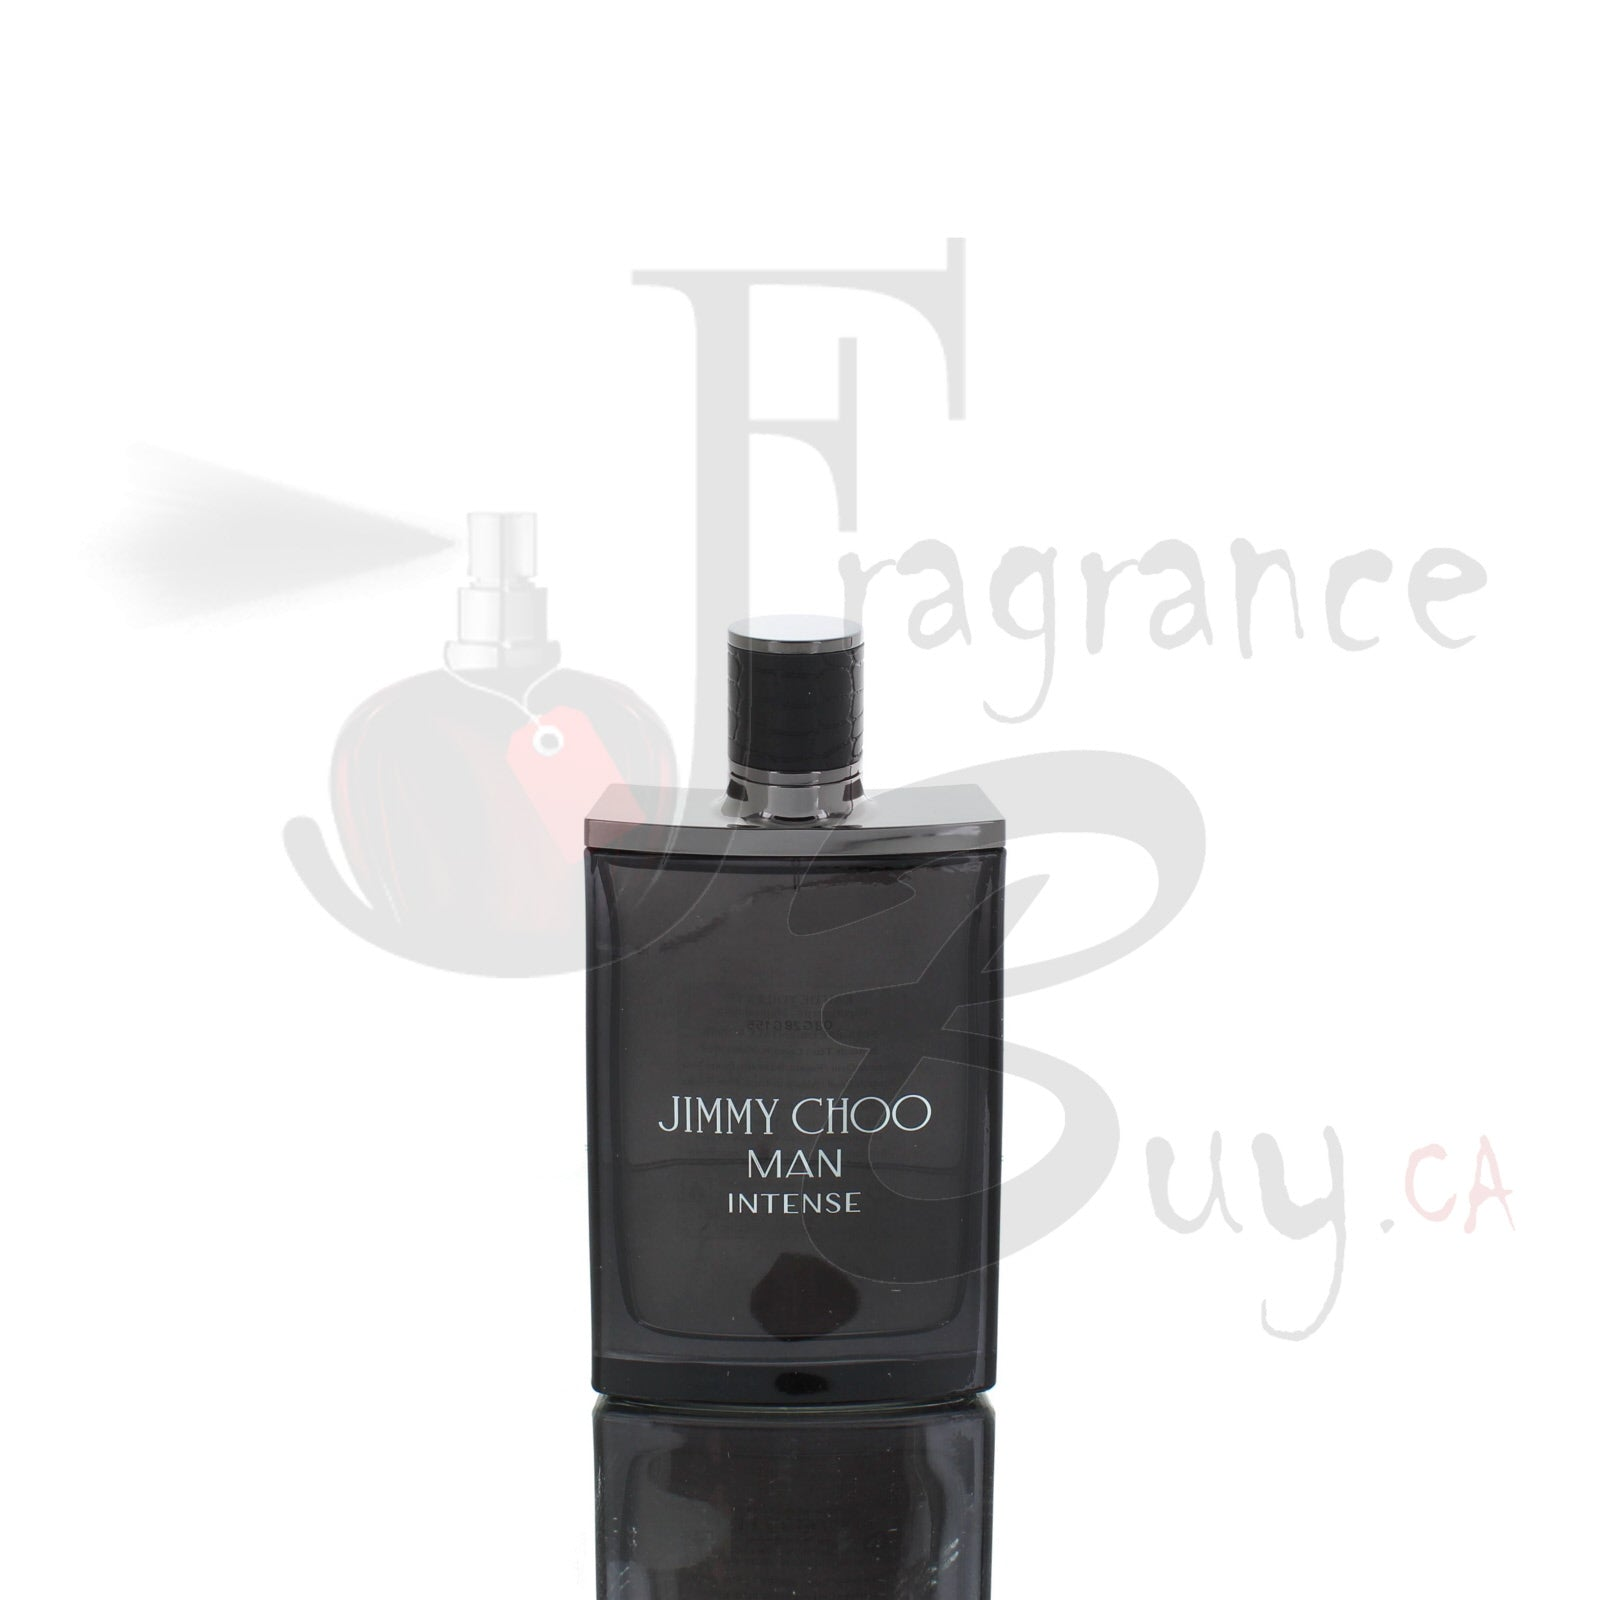 Jimmy Choo Intense For Man